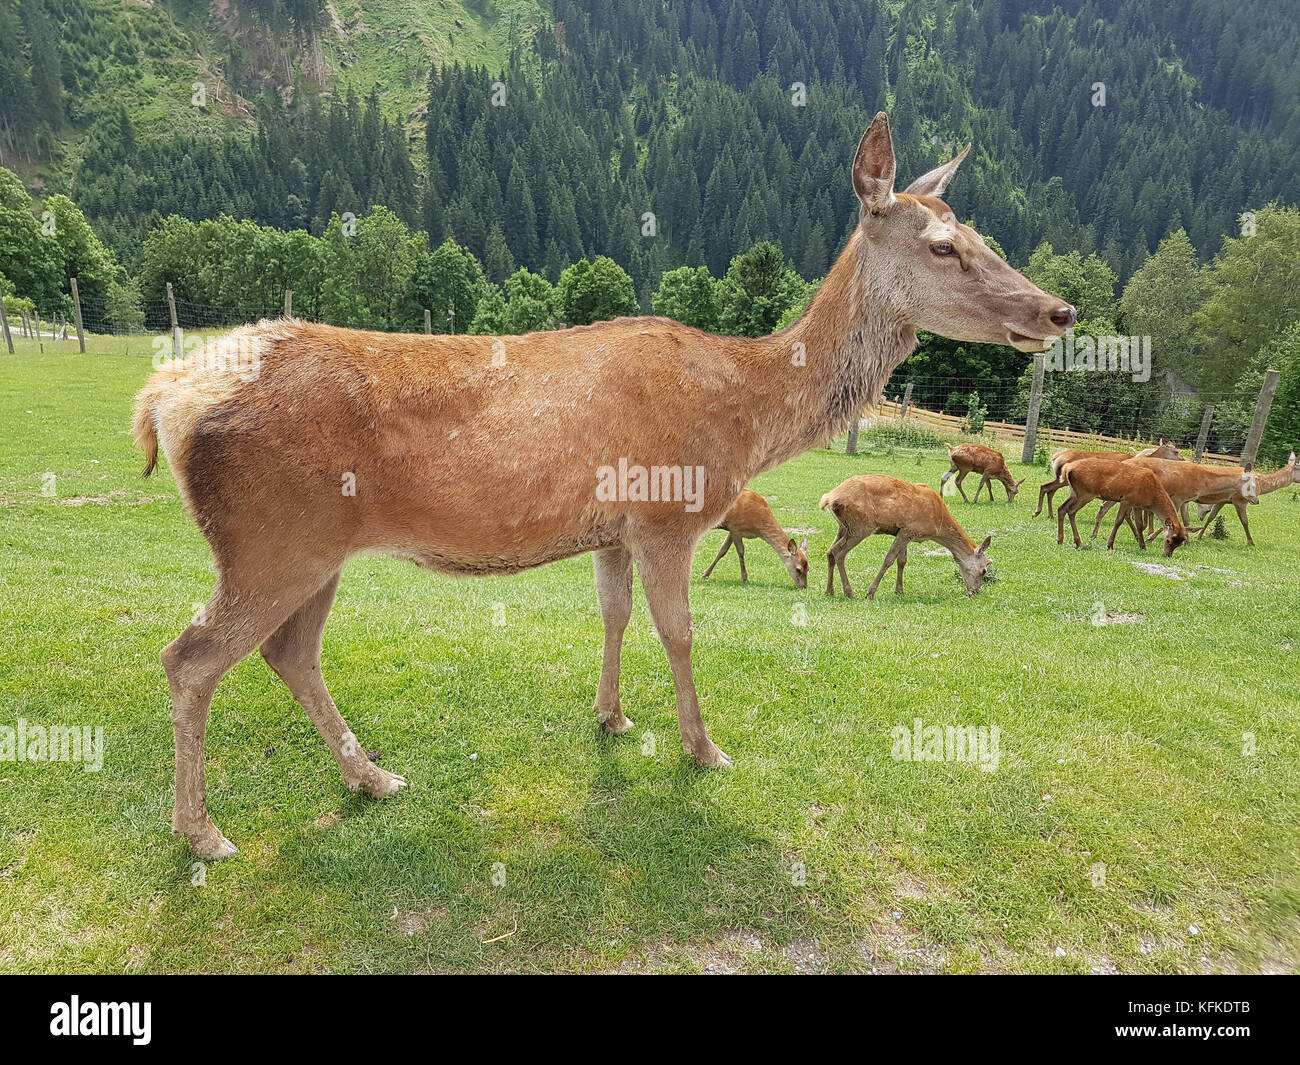 Rothirsch, Cervus elaphus, Rotwild, Hirsch Stock Photo